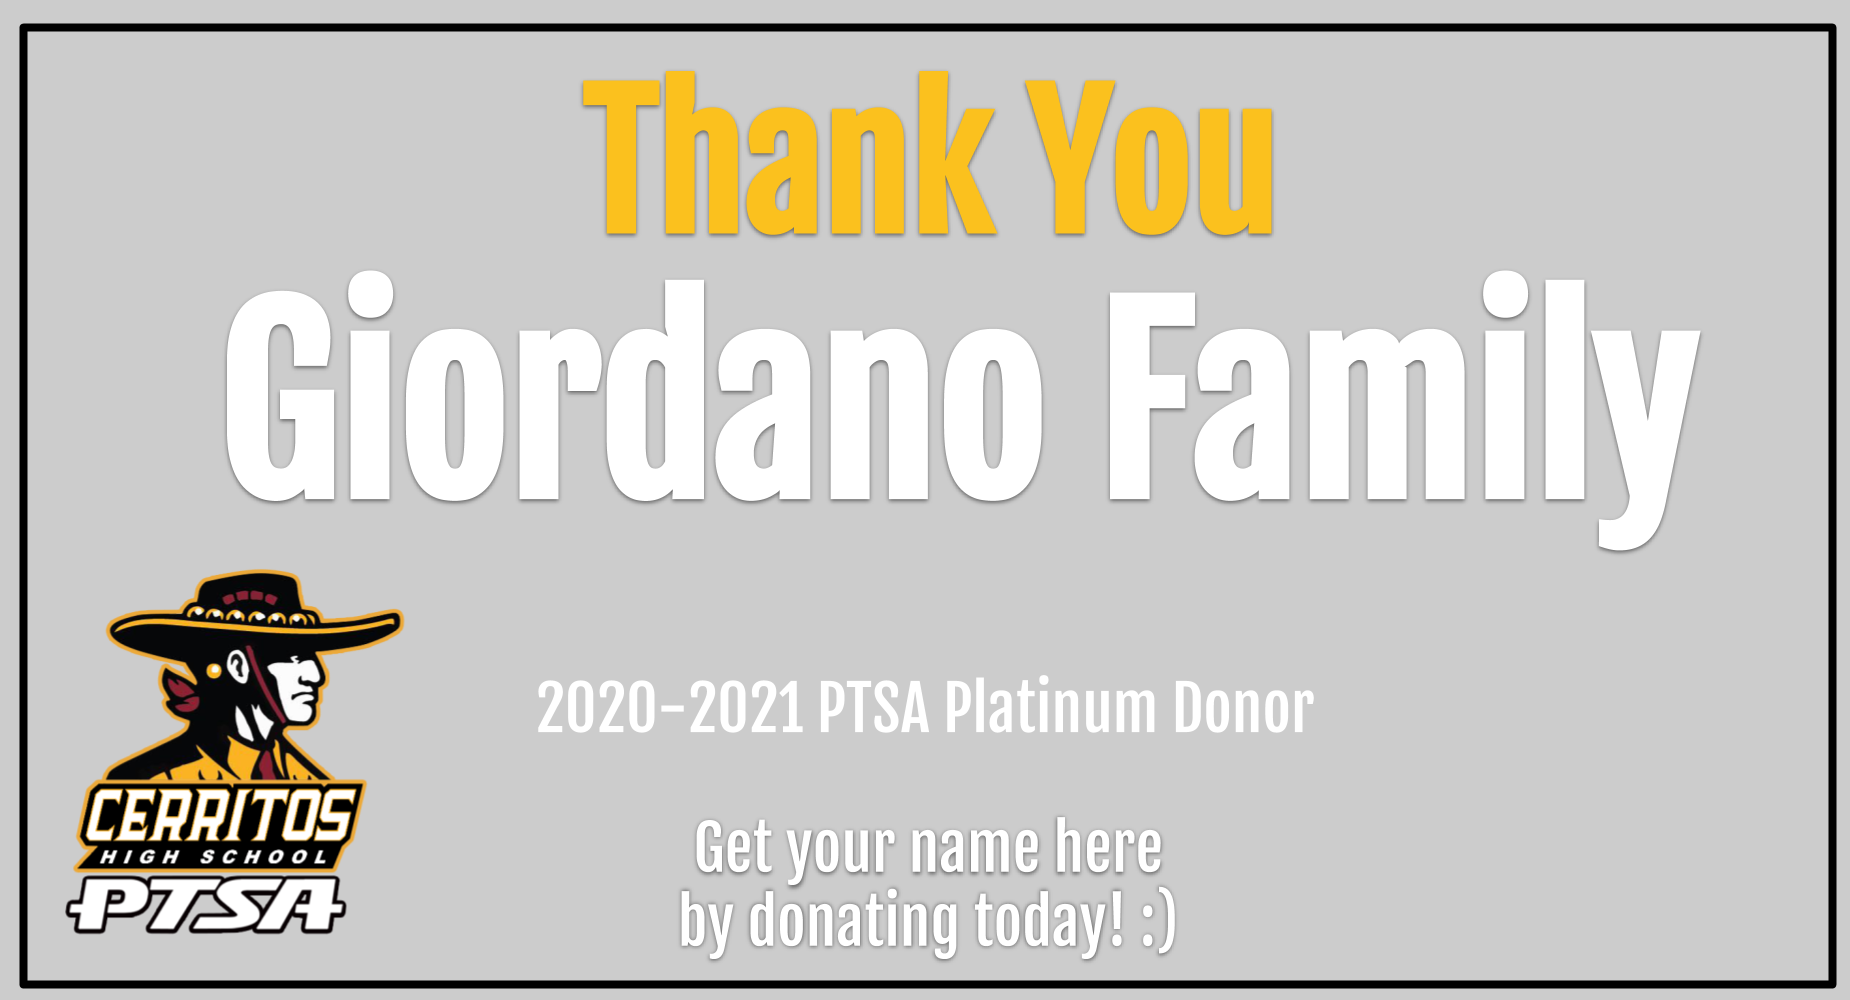 Thank you - PTSA Donor Giordano Family